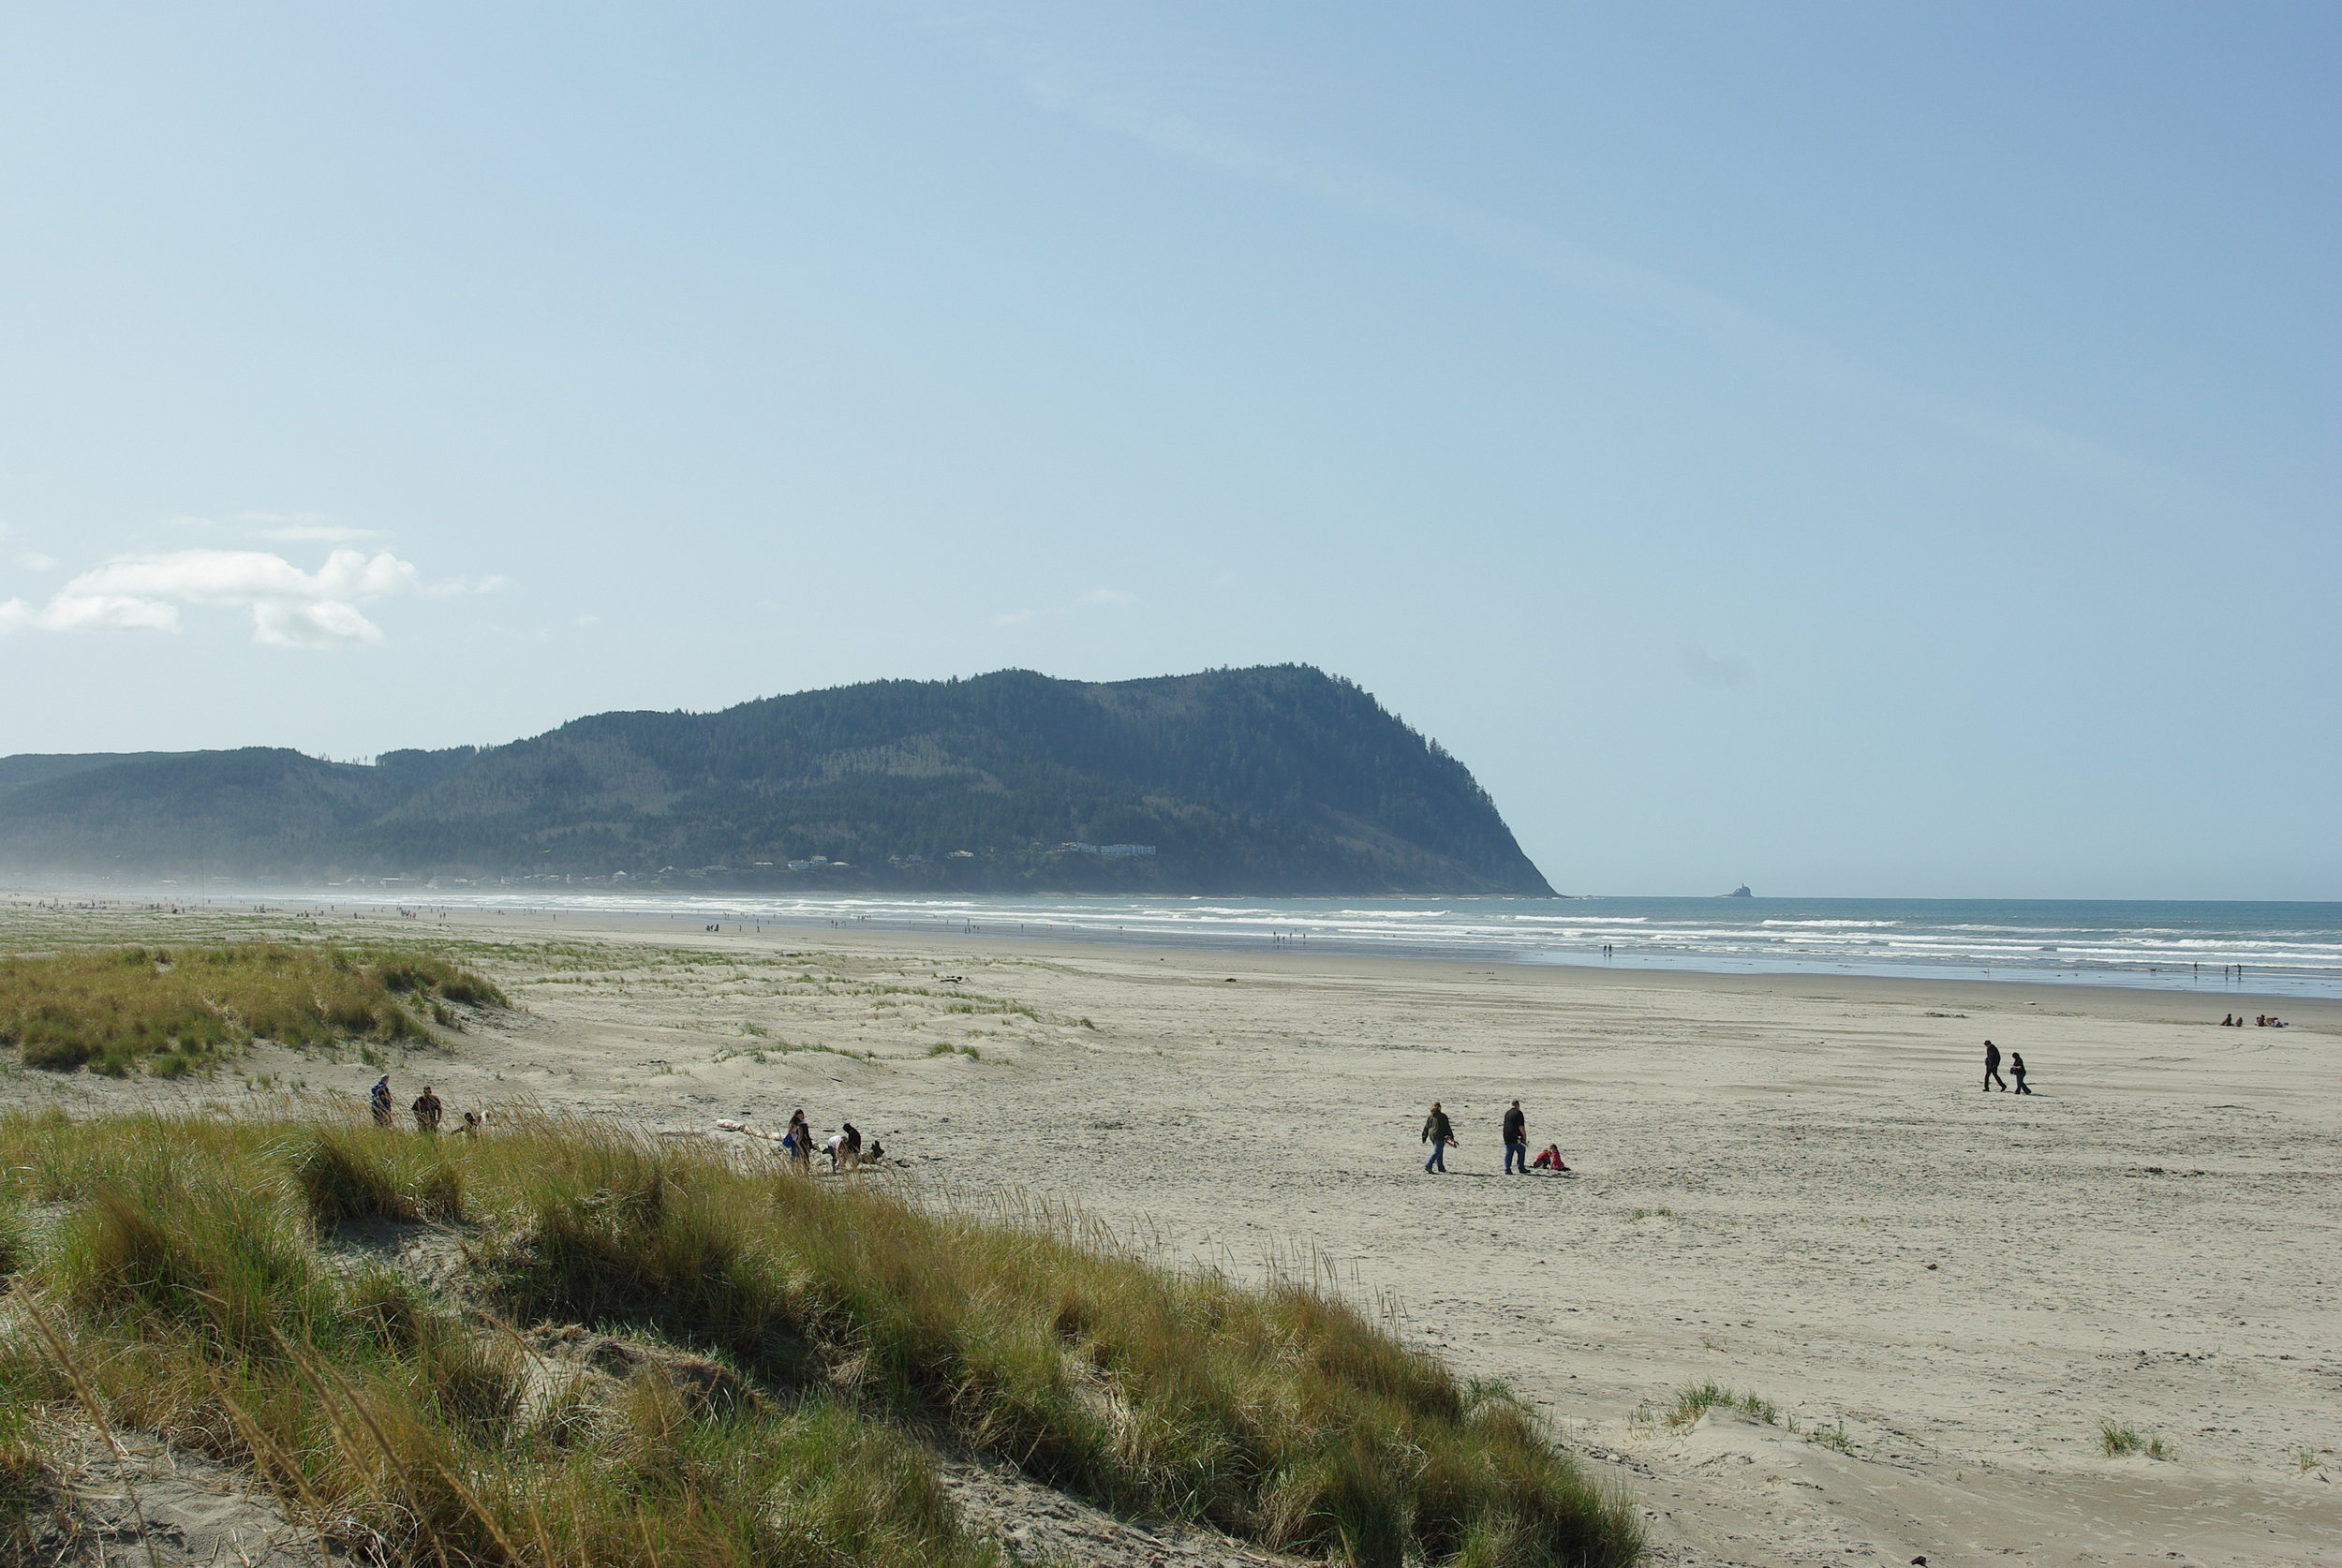 Beach_at_Seaside_with_Tillamook_Head_-_Oregon.JPG